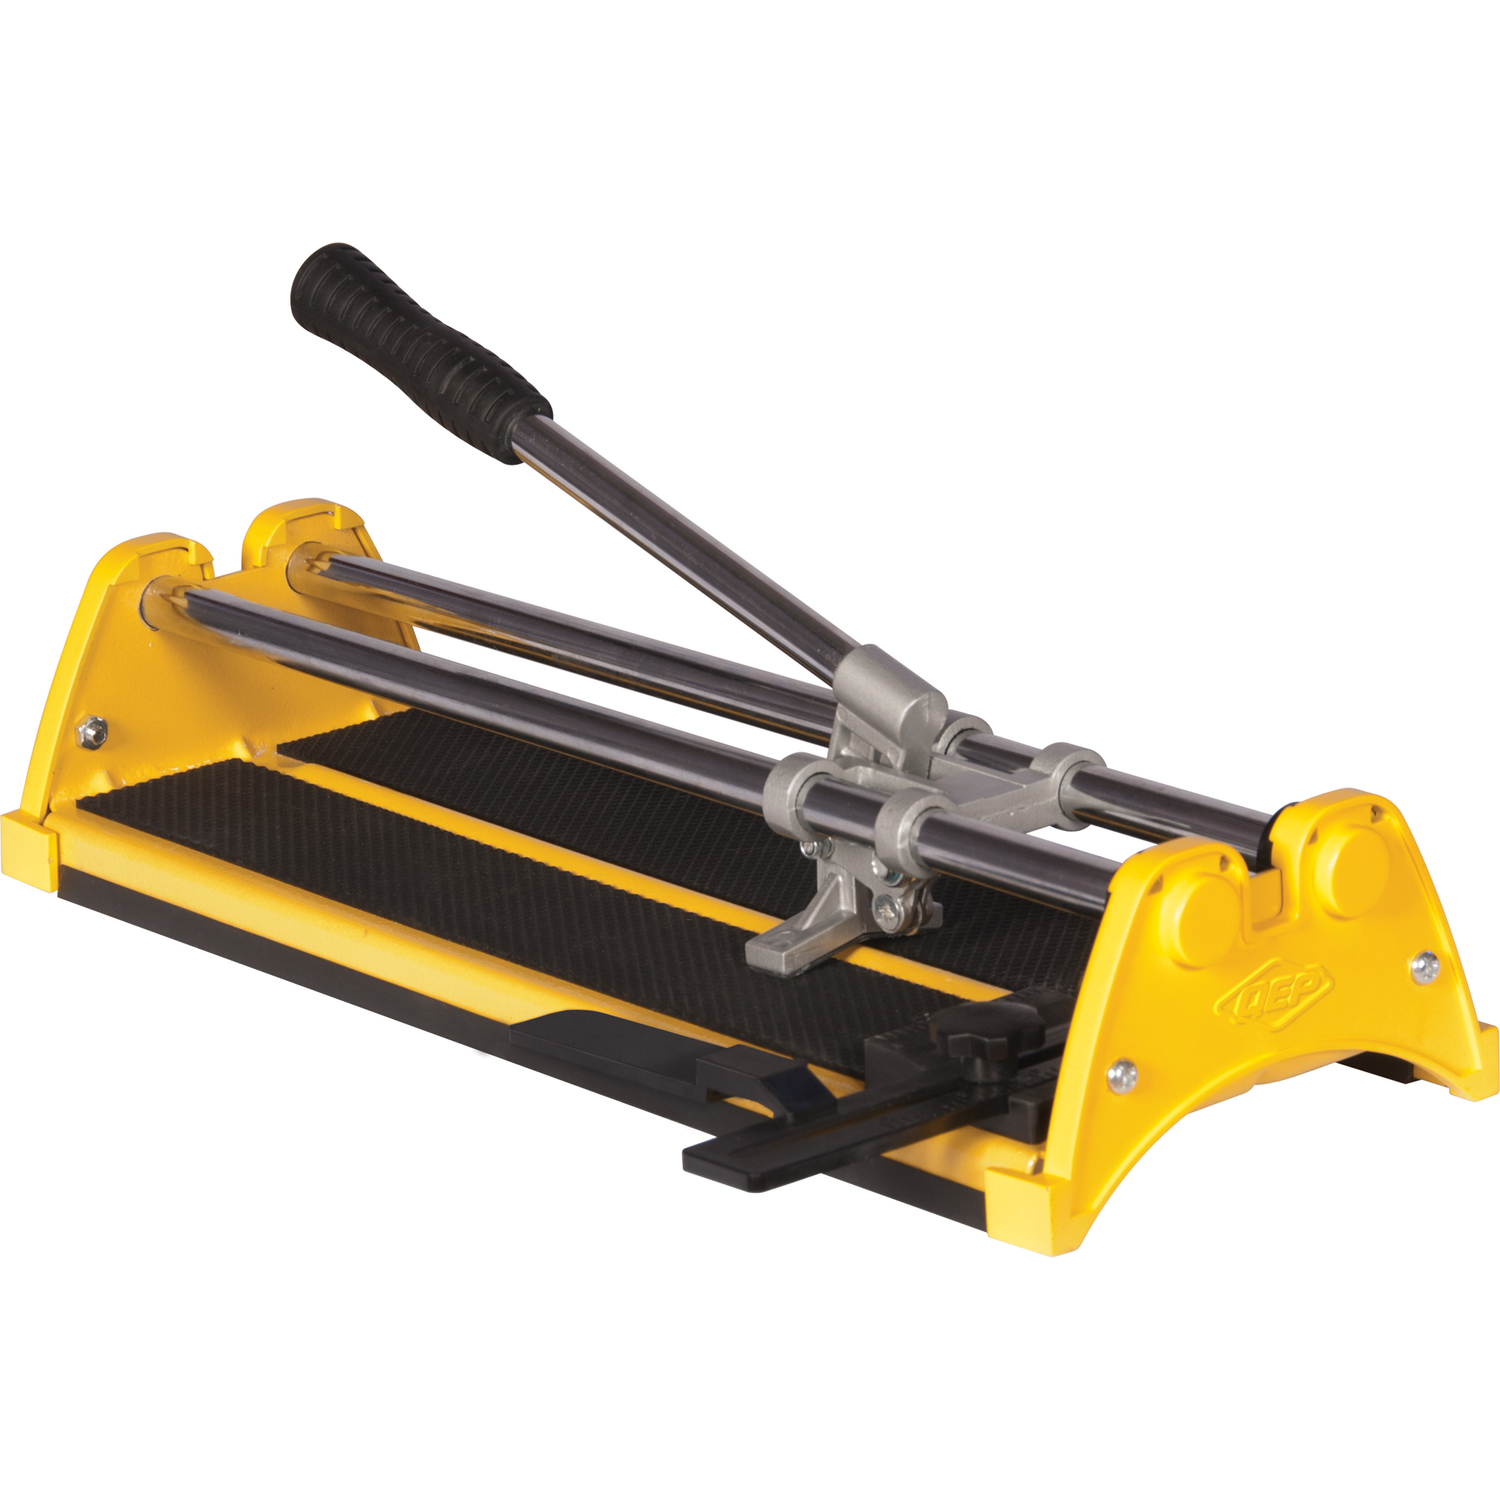 QEP  4.5 in. H x 6.1 in. W x 19 in. L Steel  Tile Cutter  1 pk